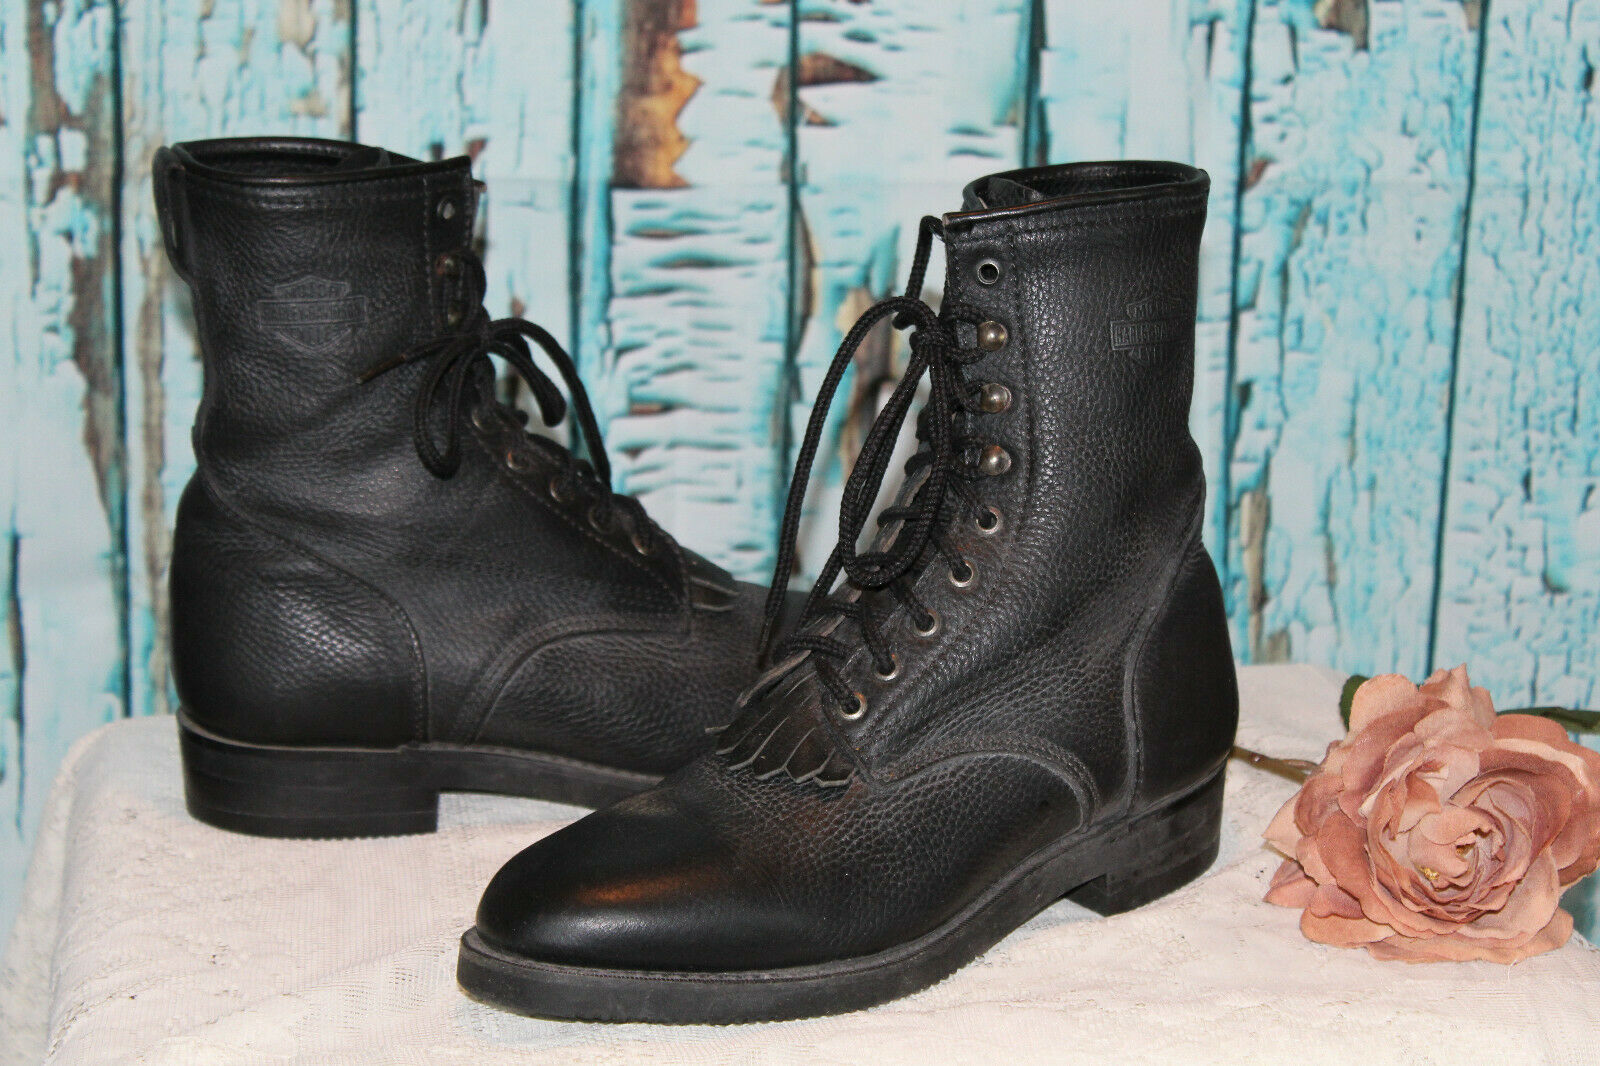 NICE  Harley-Davidson WOMENS WOMENS WOMENS  BLACK Leather LACE UP Motorcycle Boots 11M f9e3d3